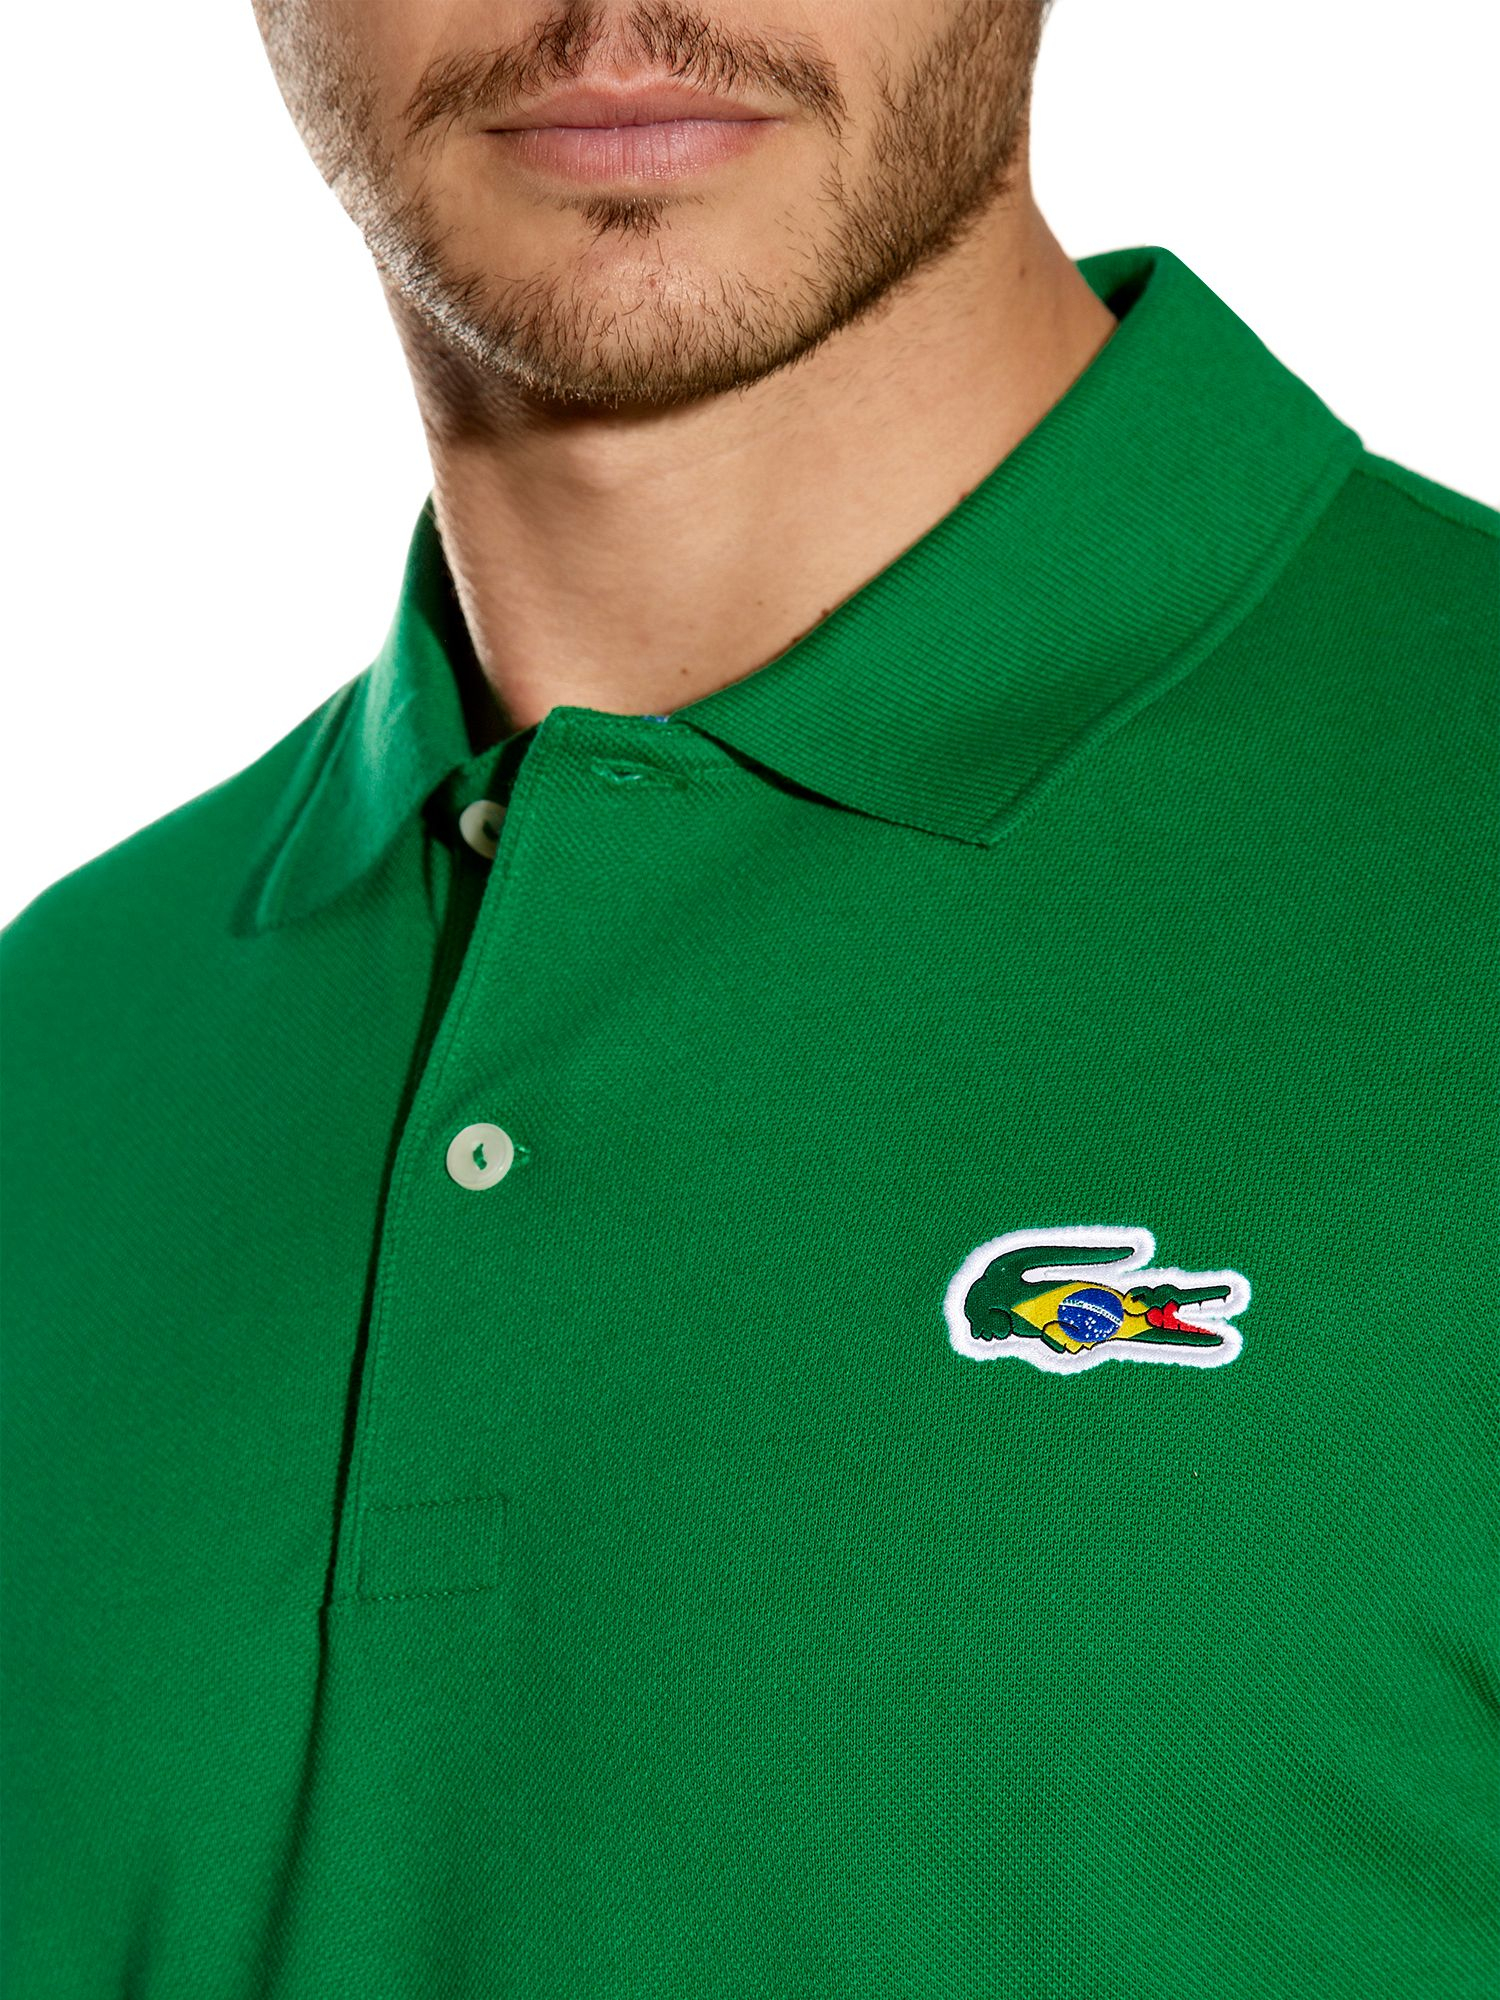 lyst lacoste brazil themed polo shirt in green for men